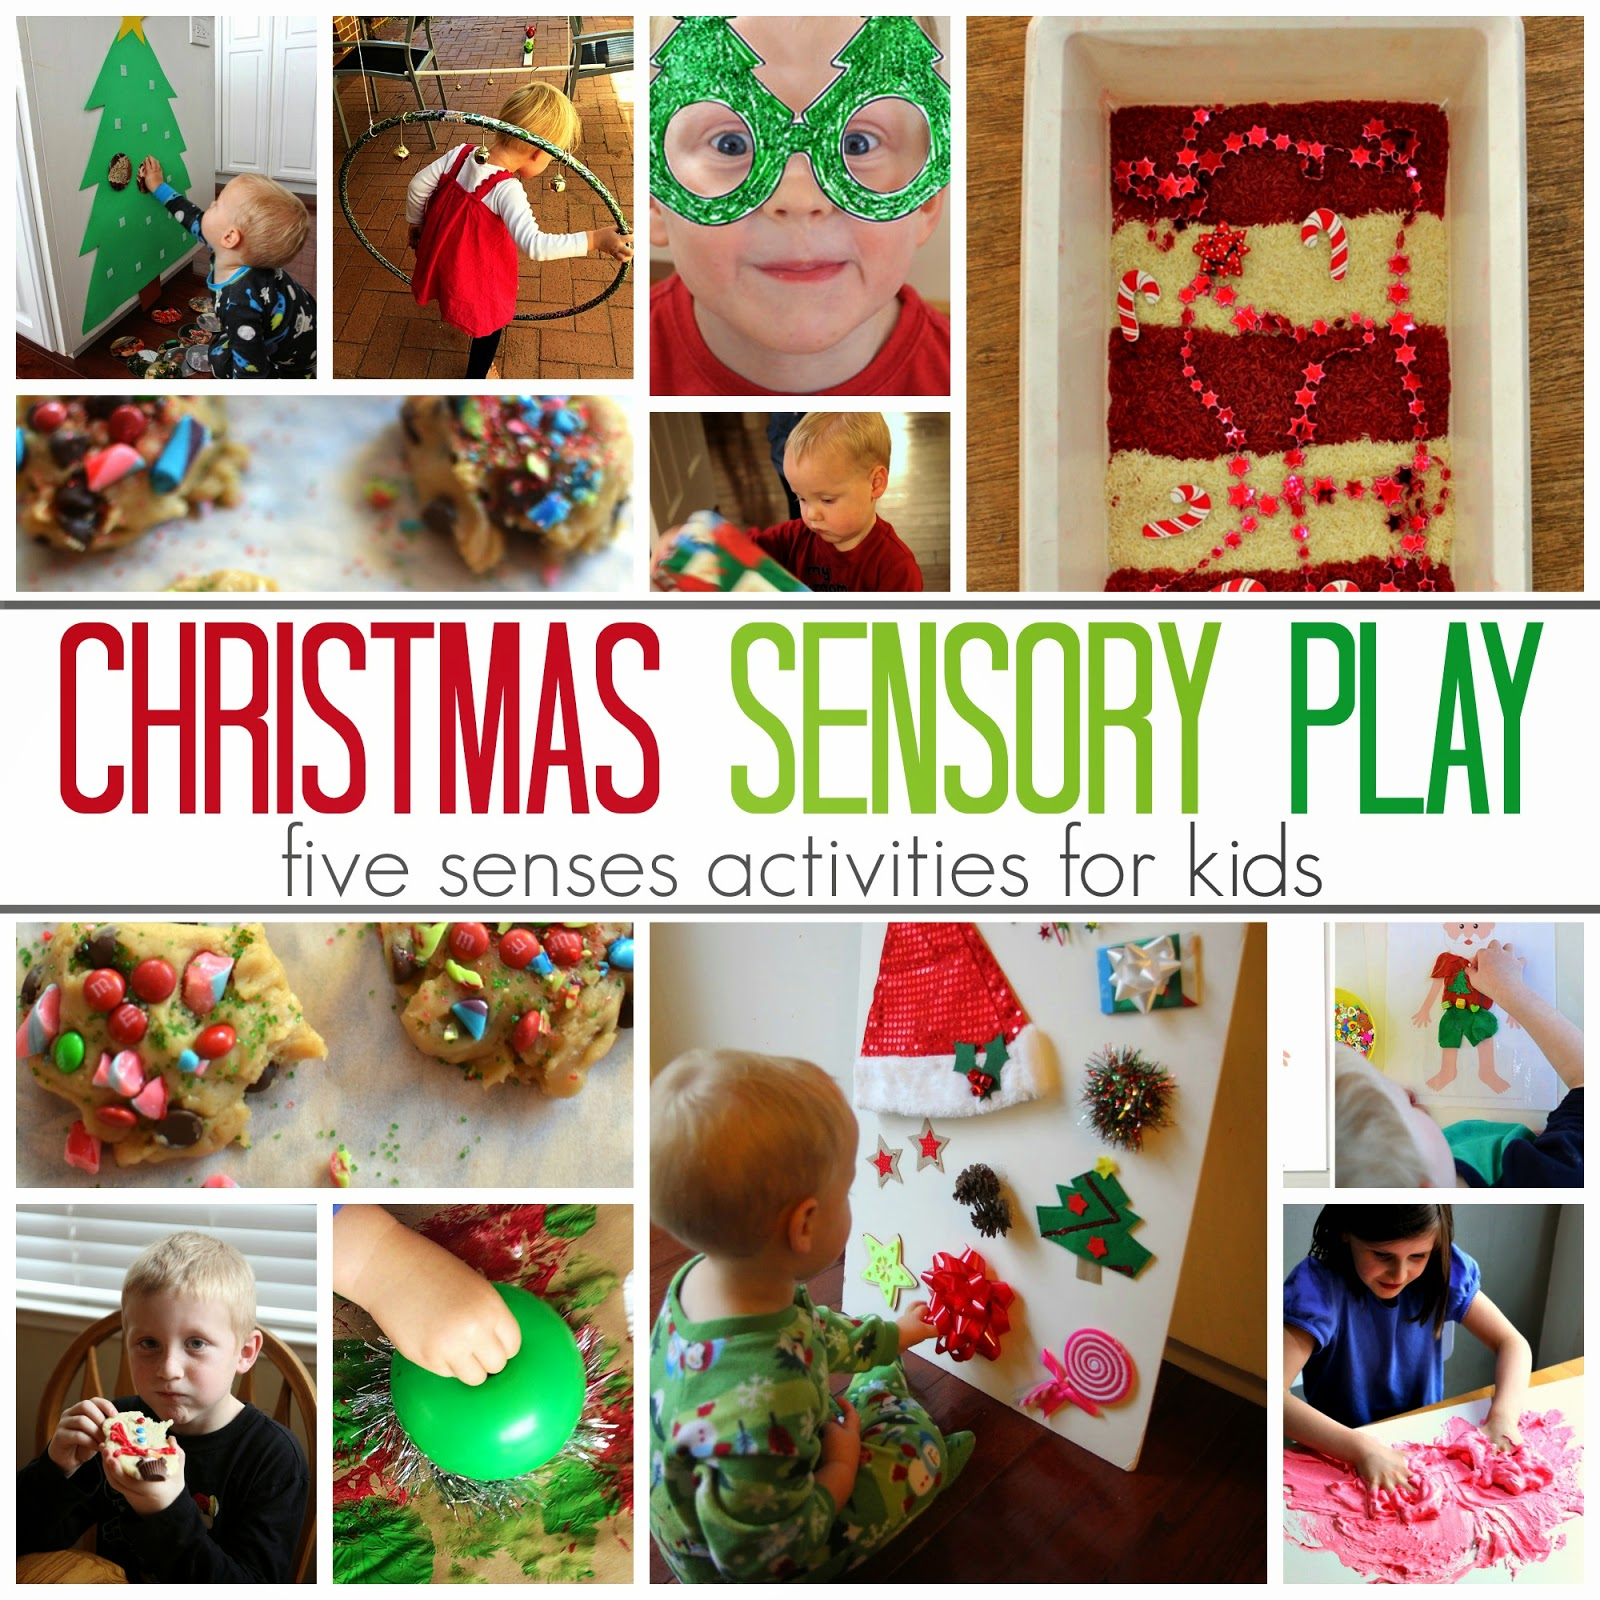 Toddler Approved!: 5 Senses Christmas Sensory Play Activities for Kids